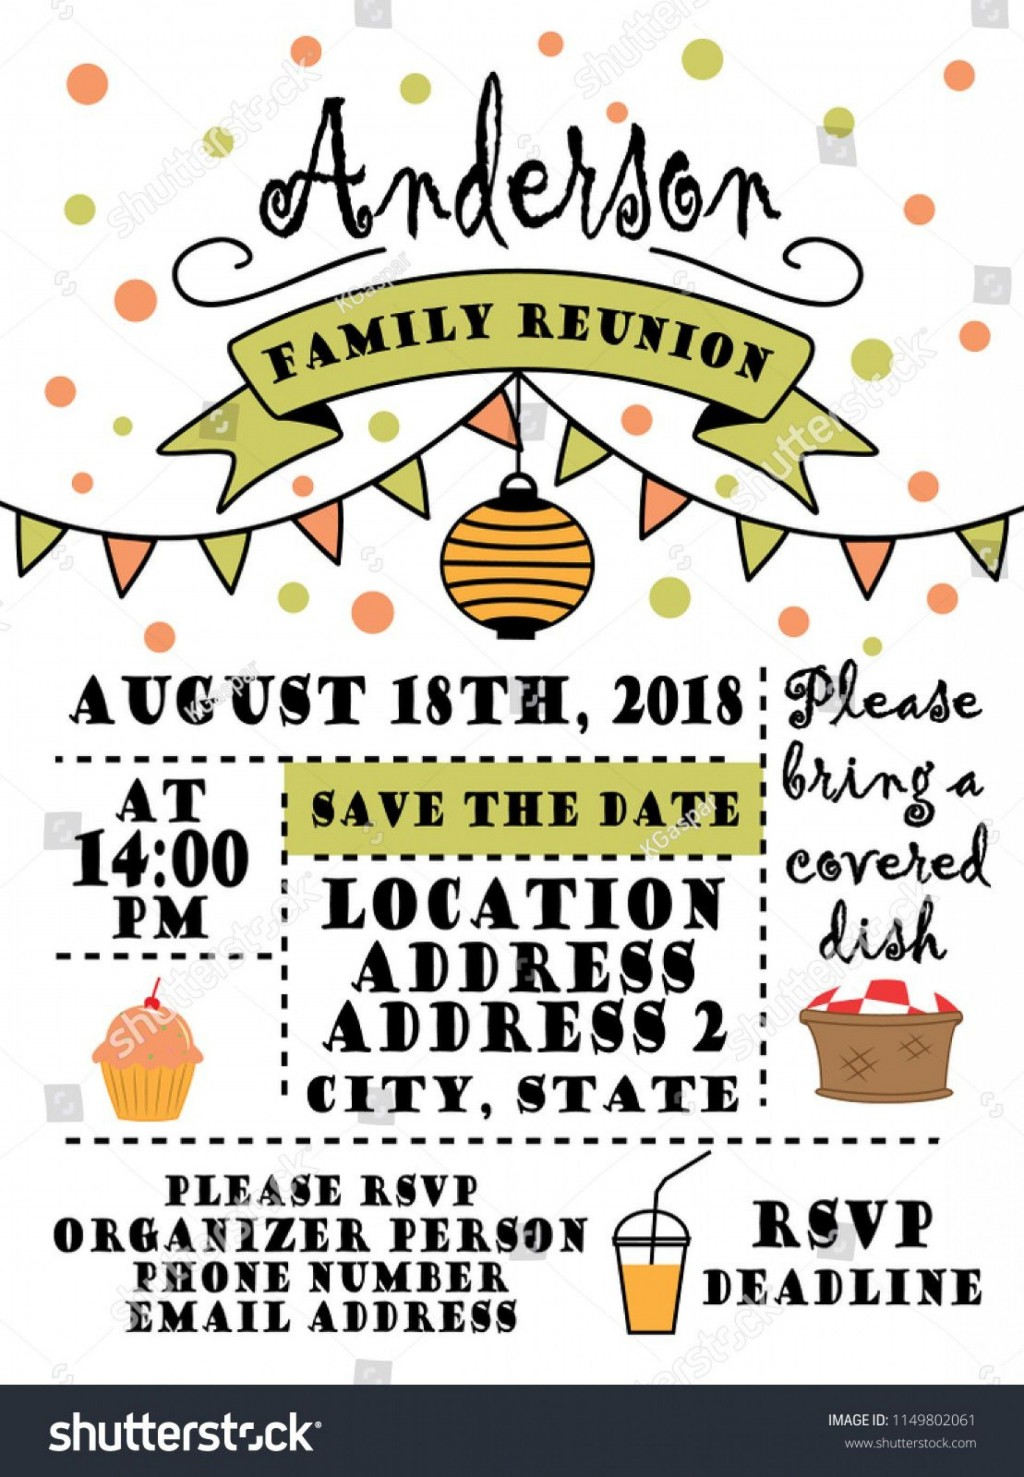 007 Fearsome Free Family Reunion Flyer Template Word High Definition Large